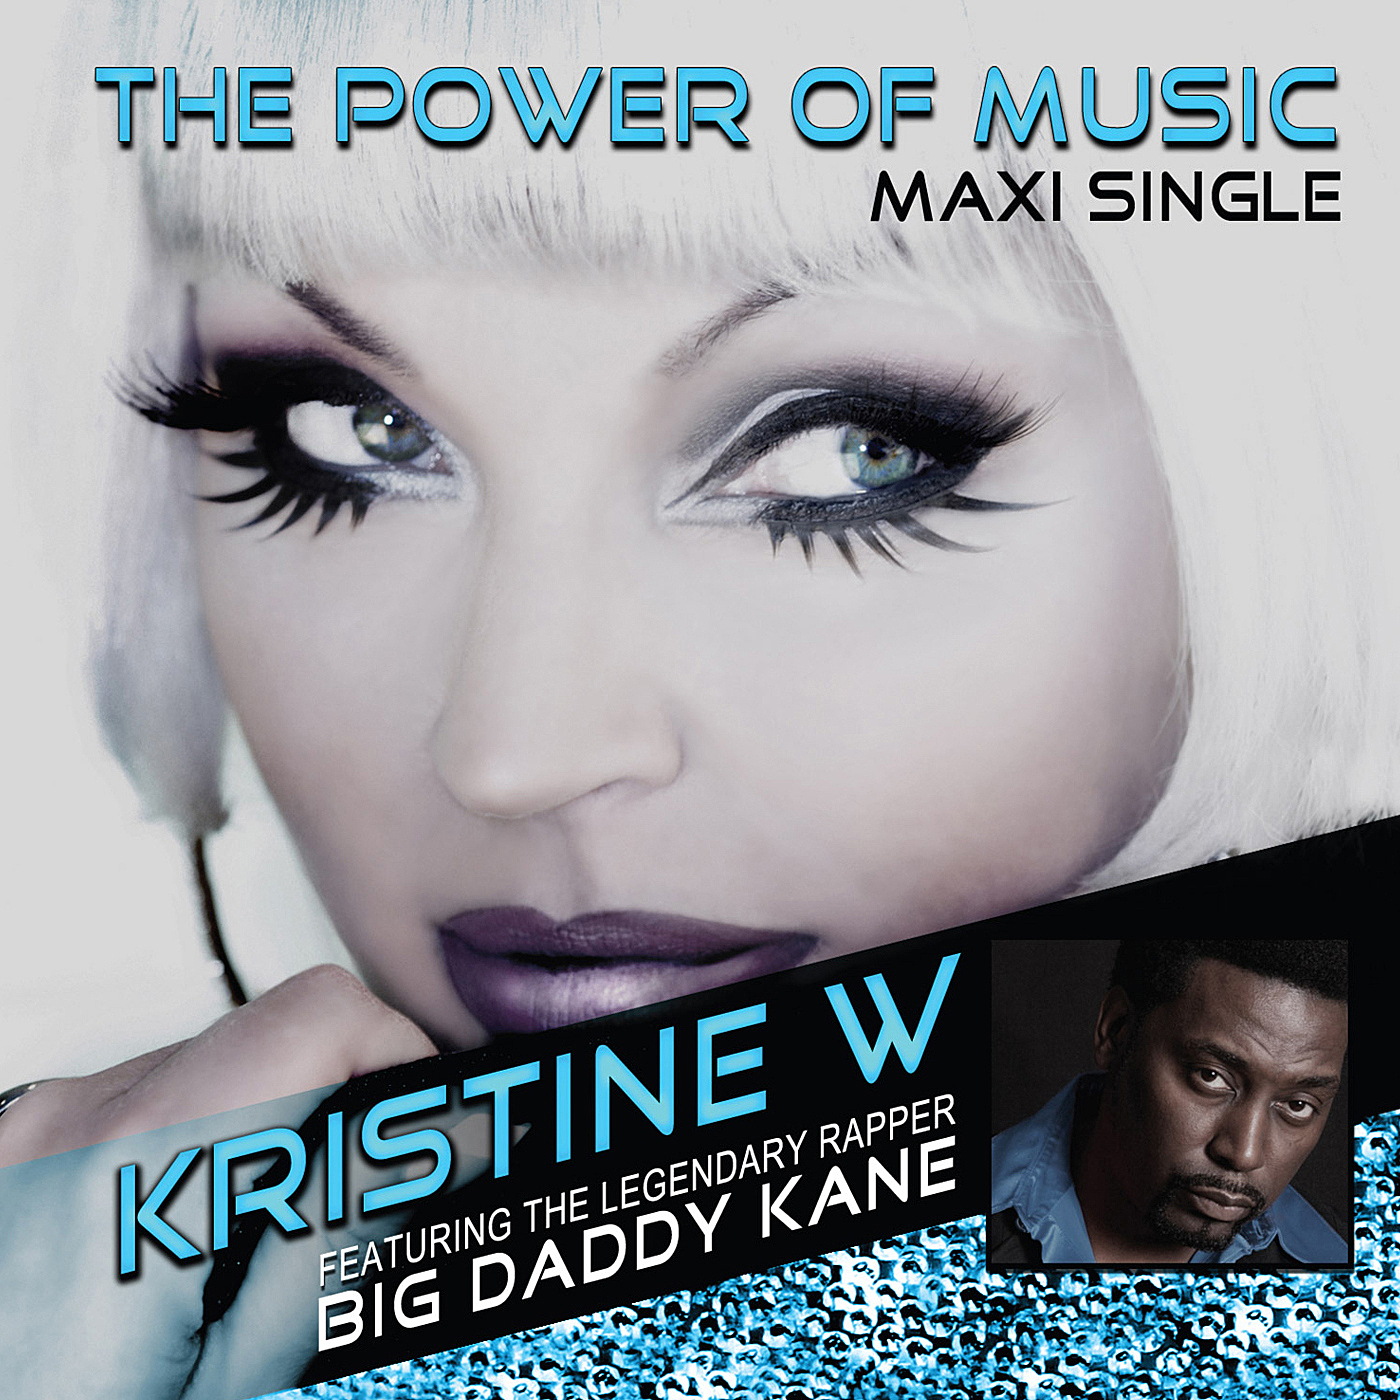 The Power Of Music (Groove Police Big Daddy Club)